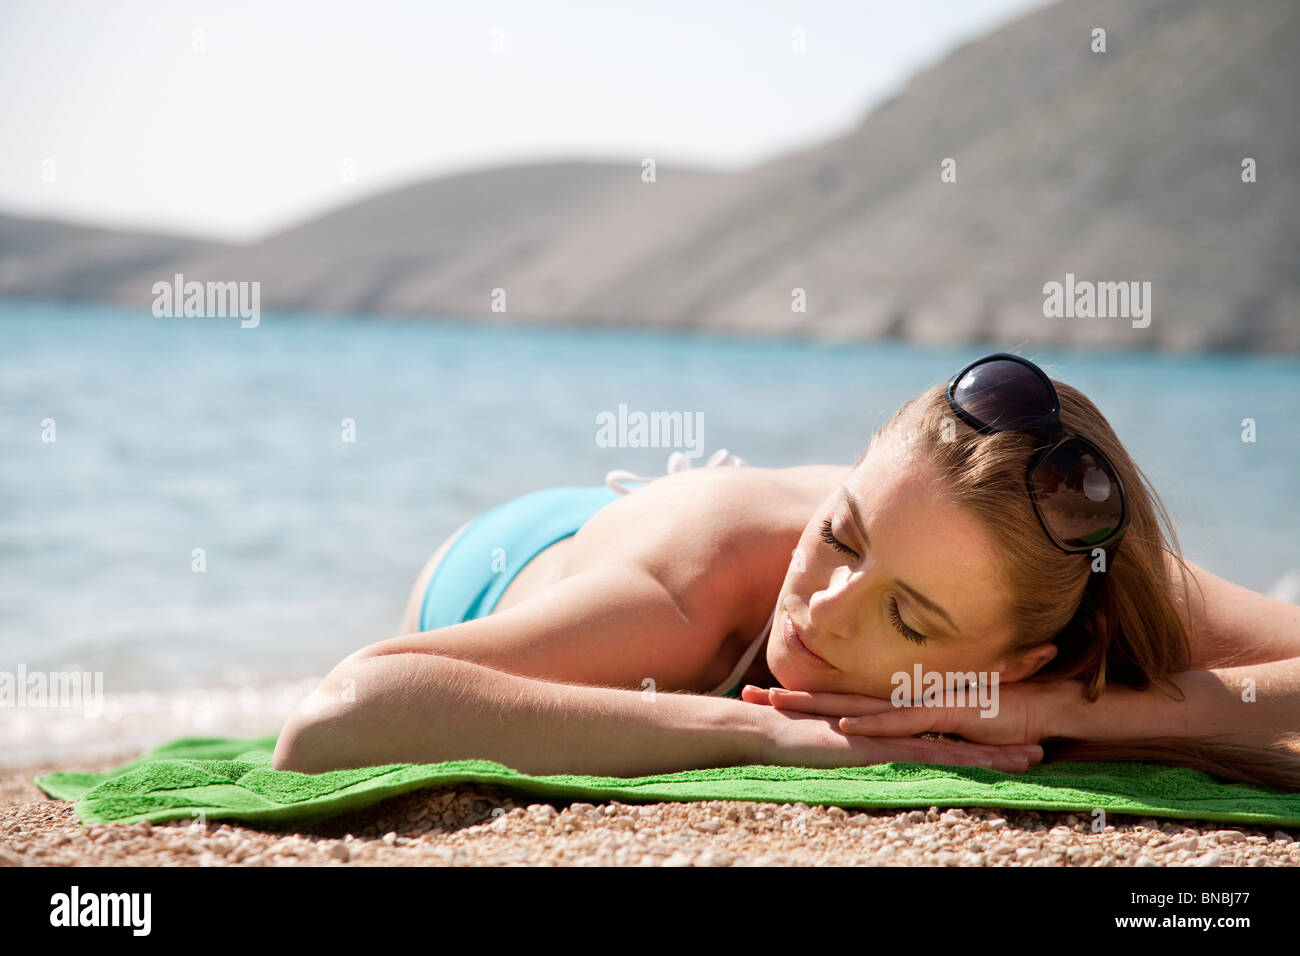 Woman sunbathing at the beach - Stock Image